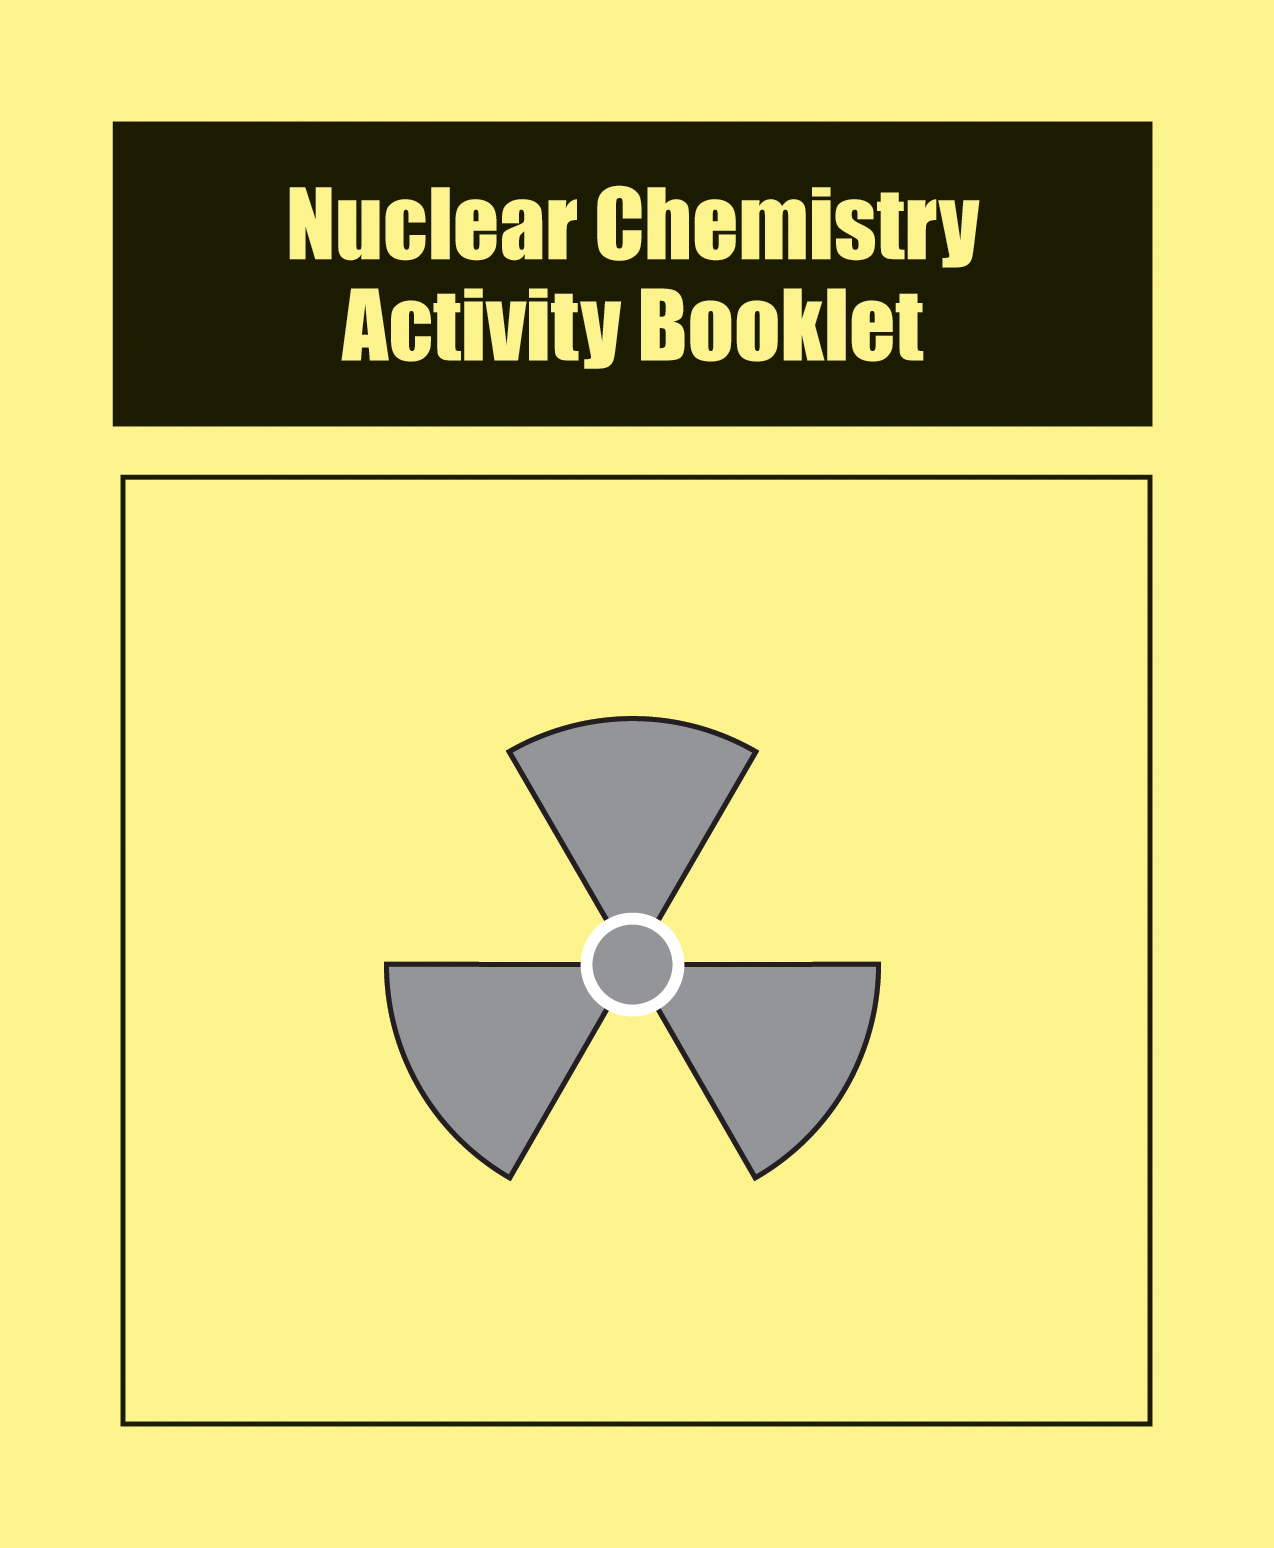 nuclear chemistry Nuclear chemistry is the subfield of chemistry dealing with radioactivity, nuclear processes, such as nuclear transmutation, and nuclear properties it is the chemistry of radioactive elements such as the actinides, radium and radon together with the chemistry associated with equipment (such as nuclear reactors) which are designed to perform.